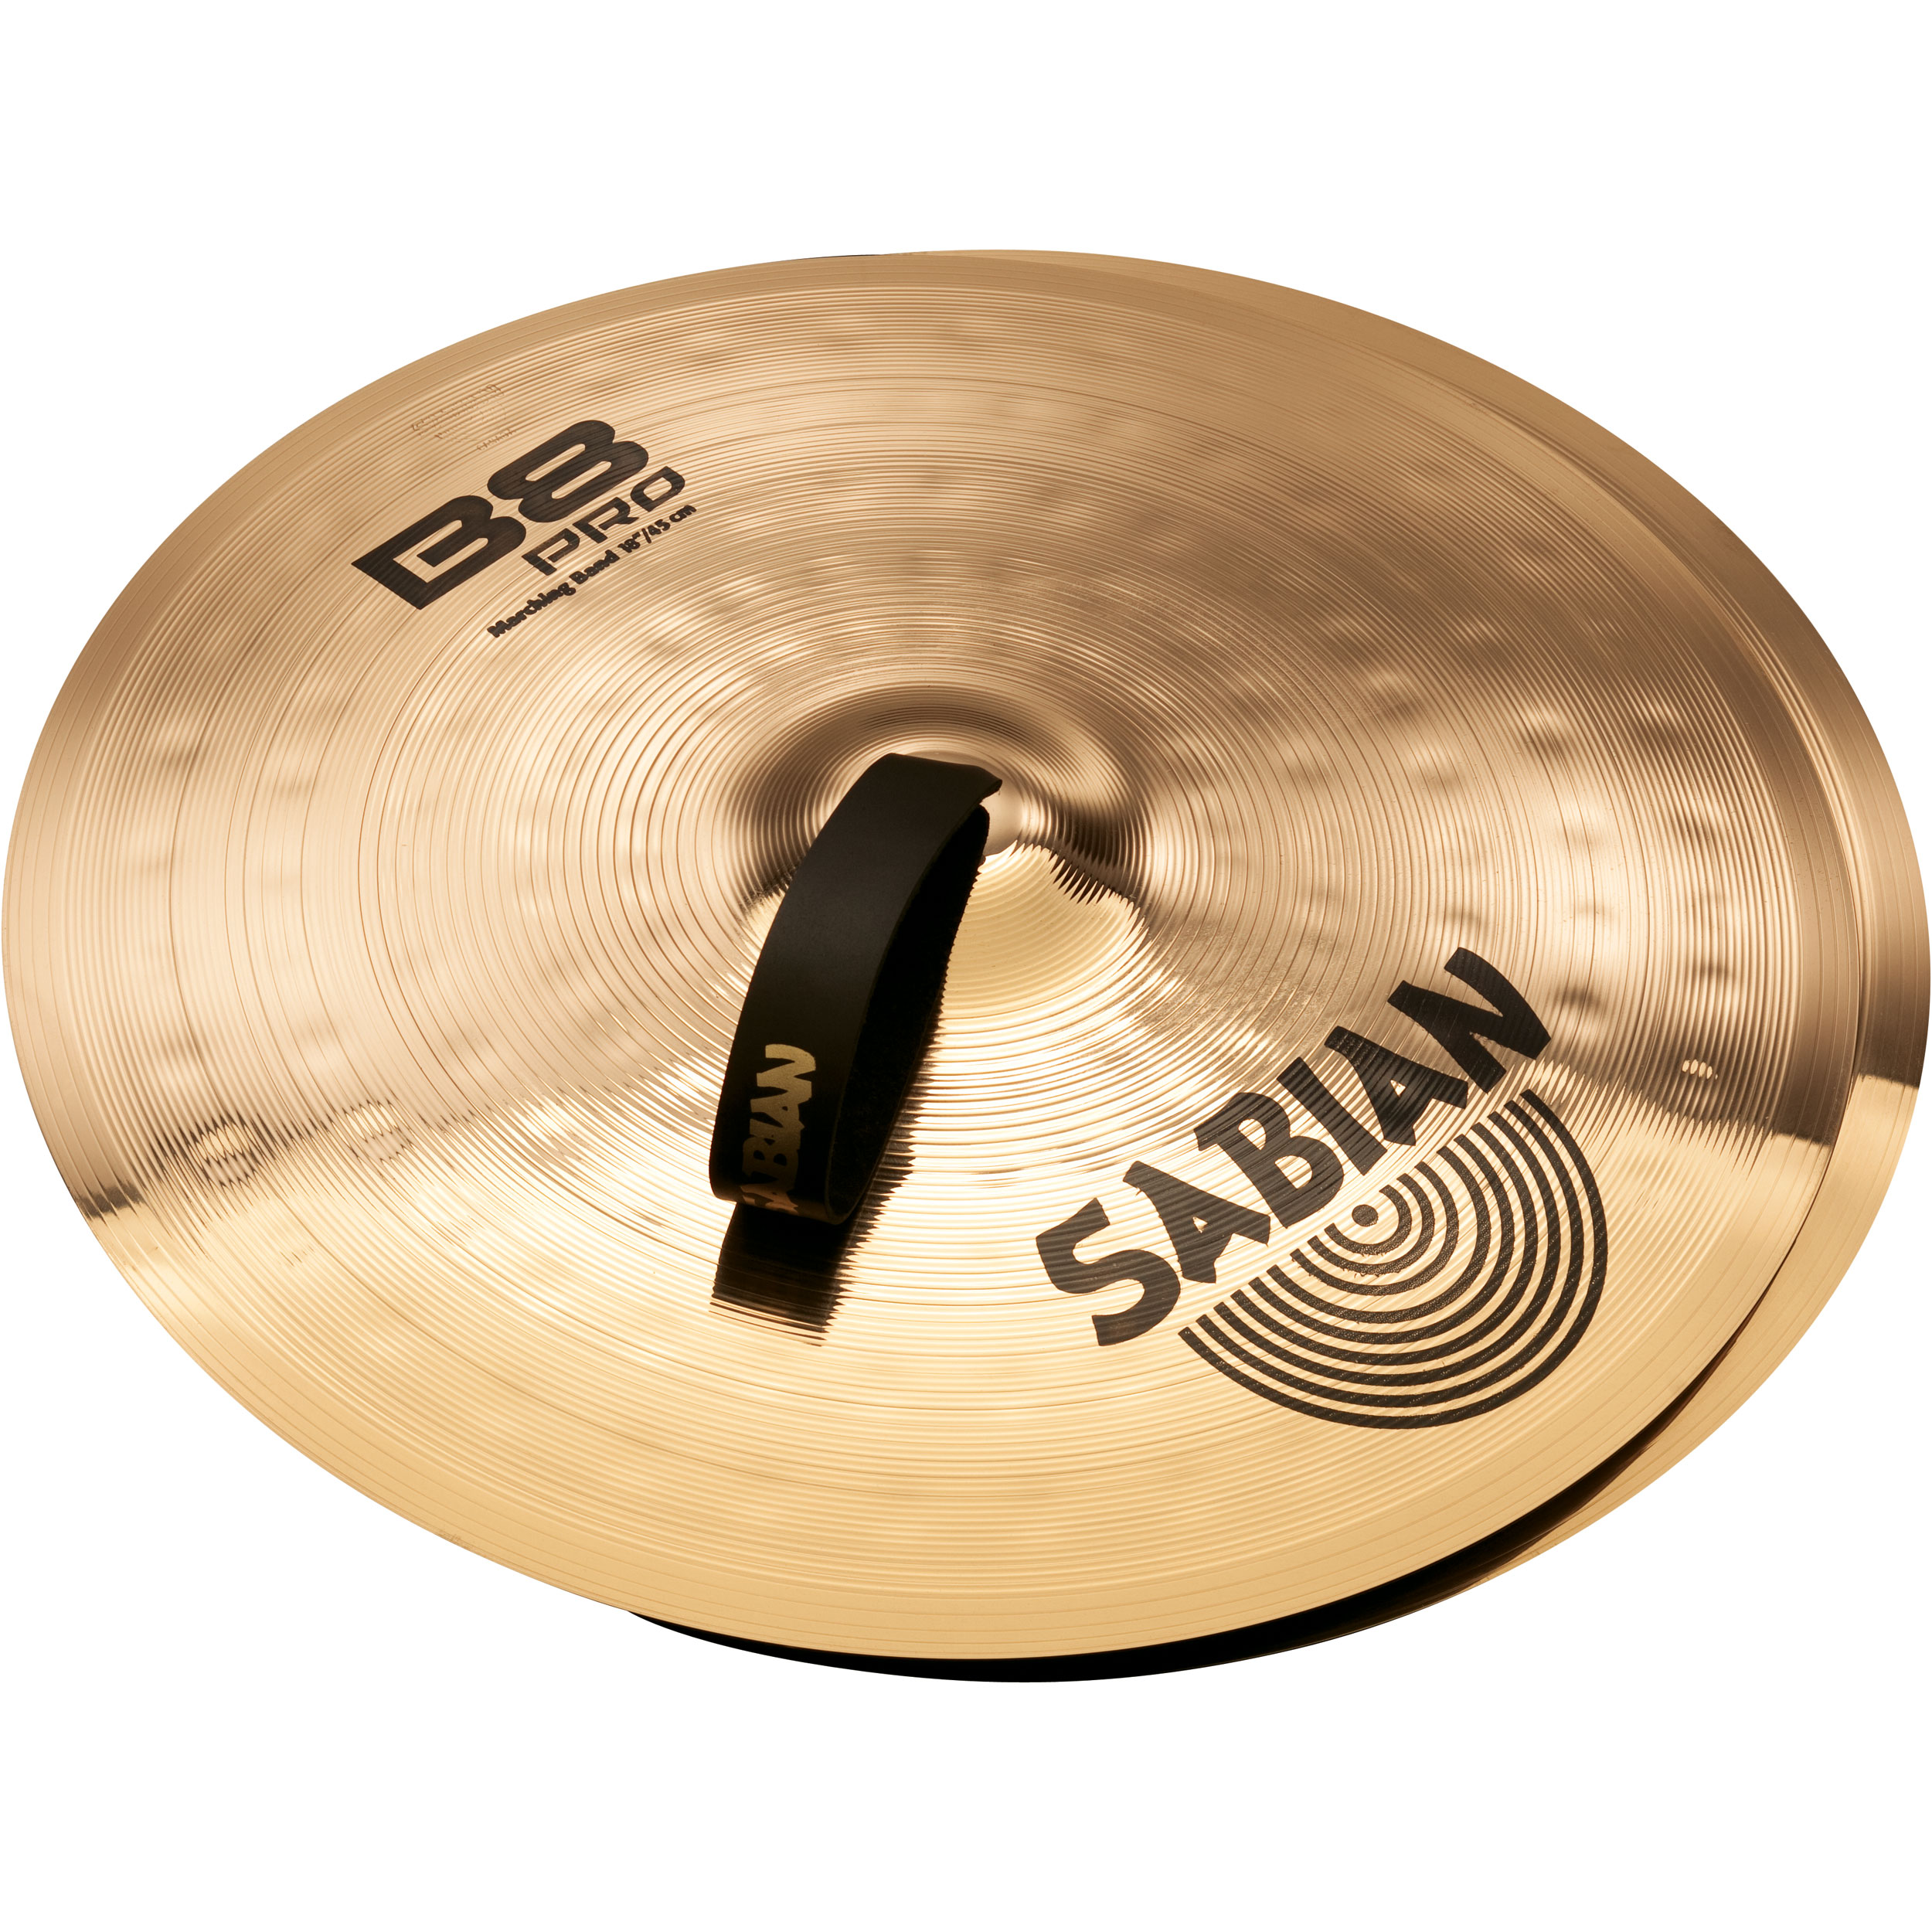 "Sabian 18"" B8 Pro Marching Band Hand Cymbal Pair"